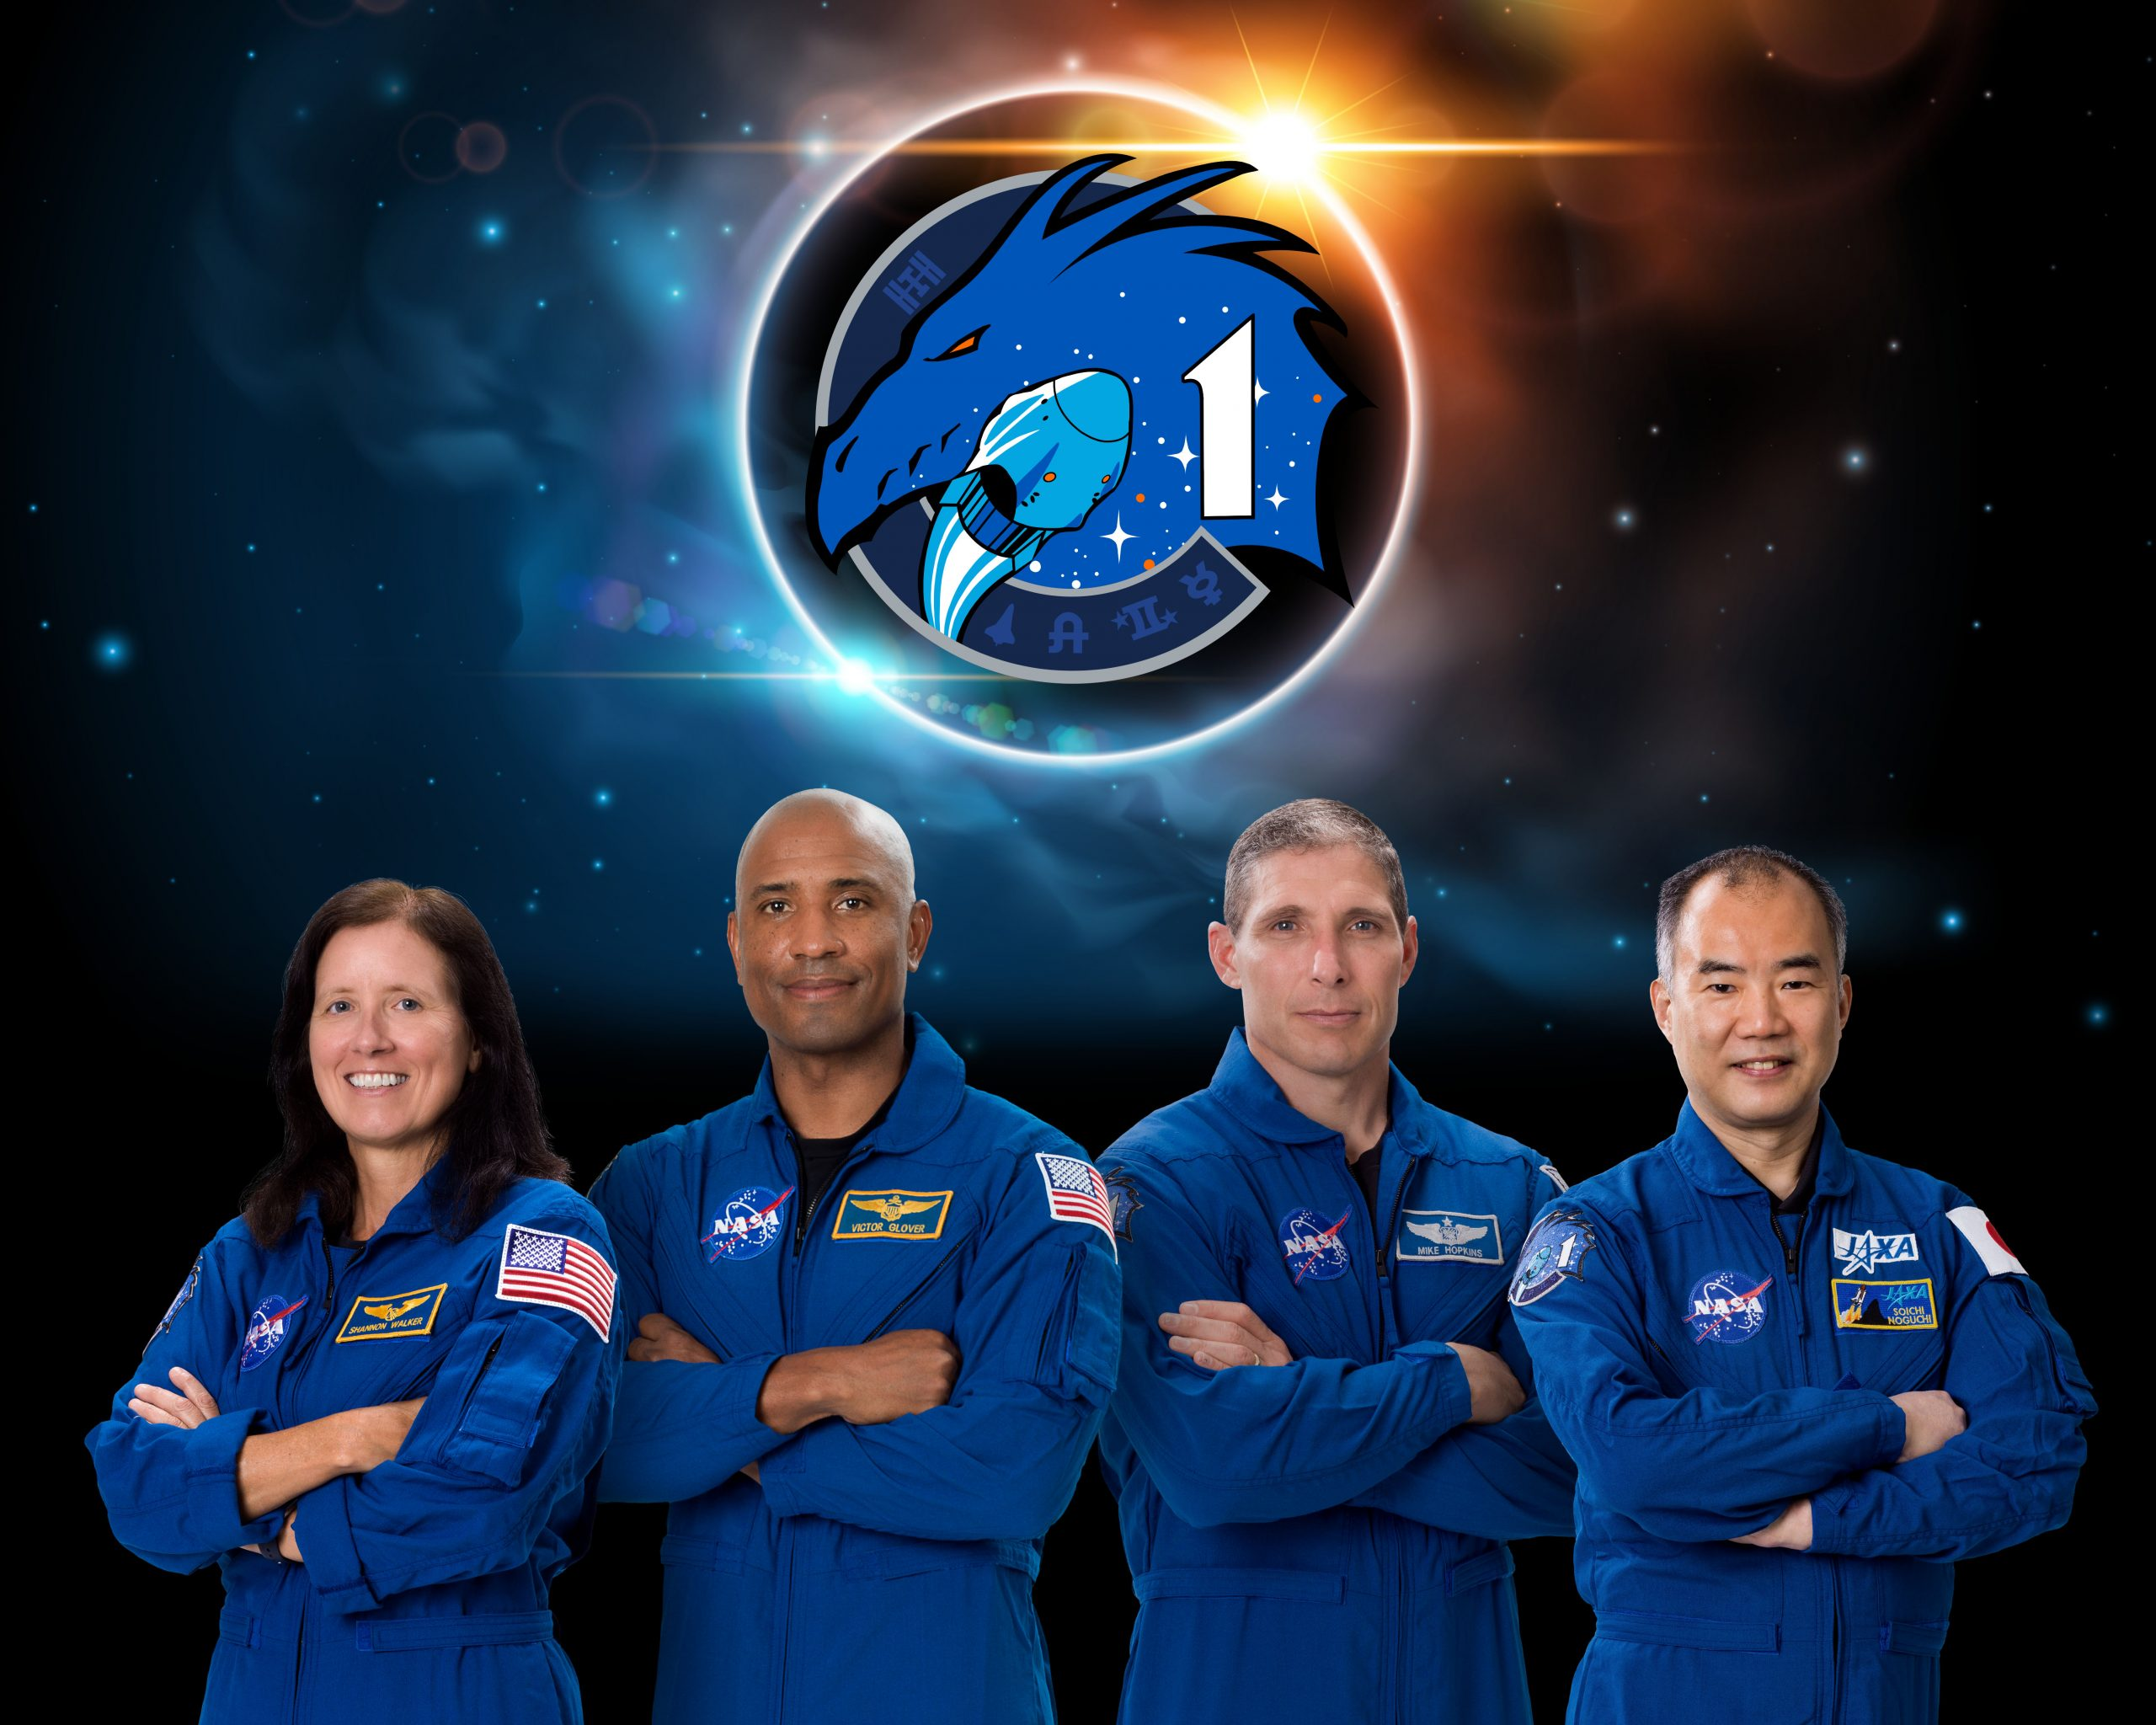 PHOTO DATE: 06/15/2020.  LOCATION: Bldg. 8 Rm. 183.  SUBJECT: SpaceX Crew-1 official crew portrait with NASA astronauts Shannon Walker, Victor Glover, Mike Hopkins, and JAXA astronaut Soichi Noguchi PHOTOGRAPHER: Norah Moran